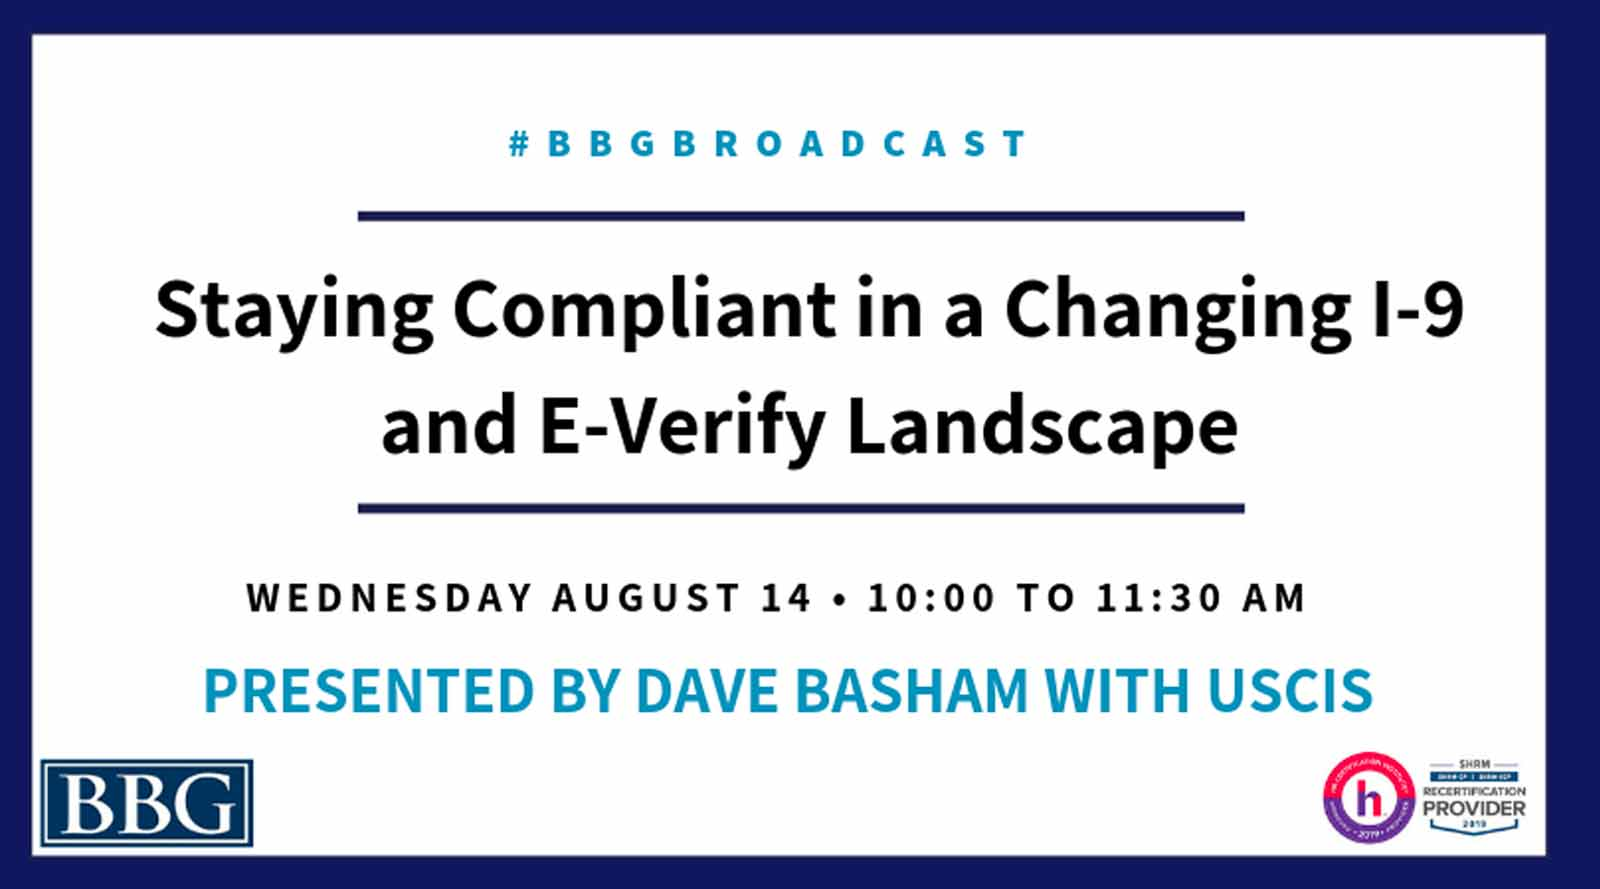 Staying compliant webinar banner